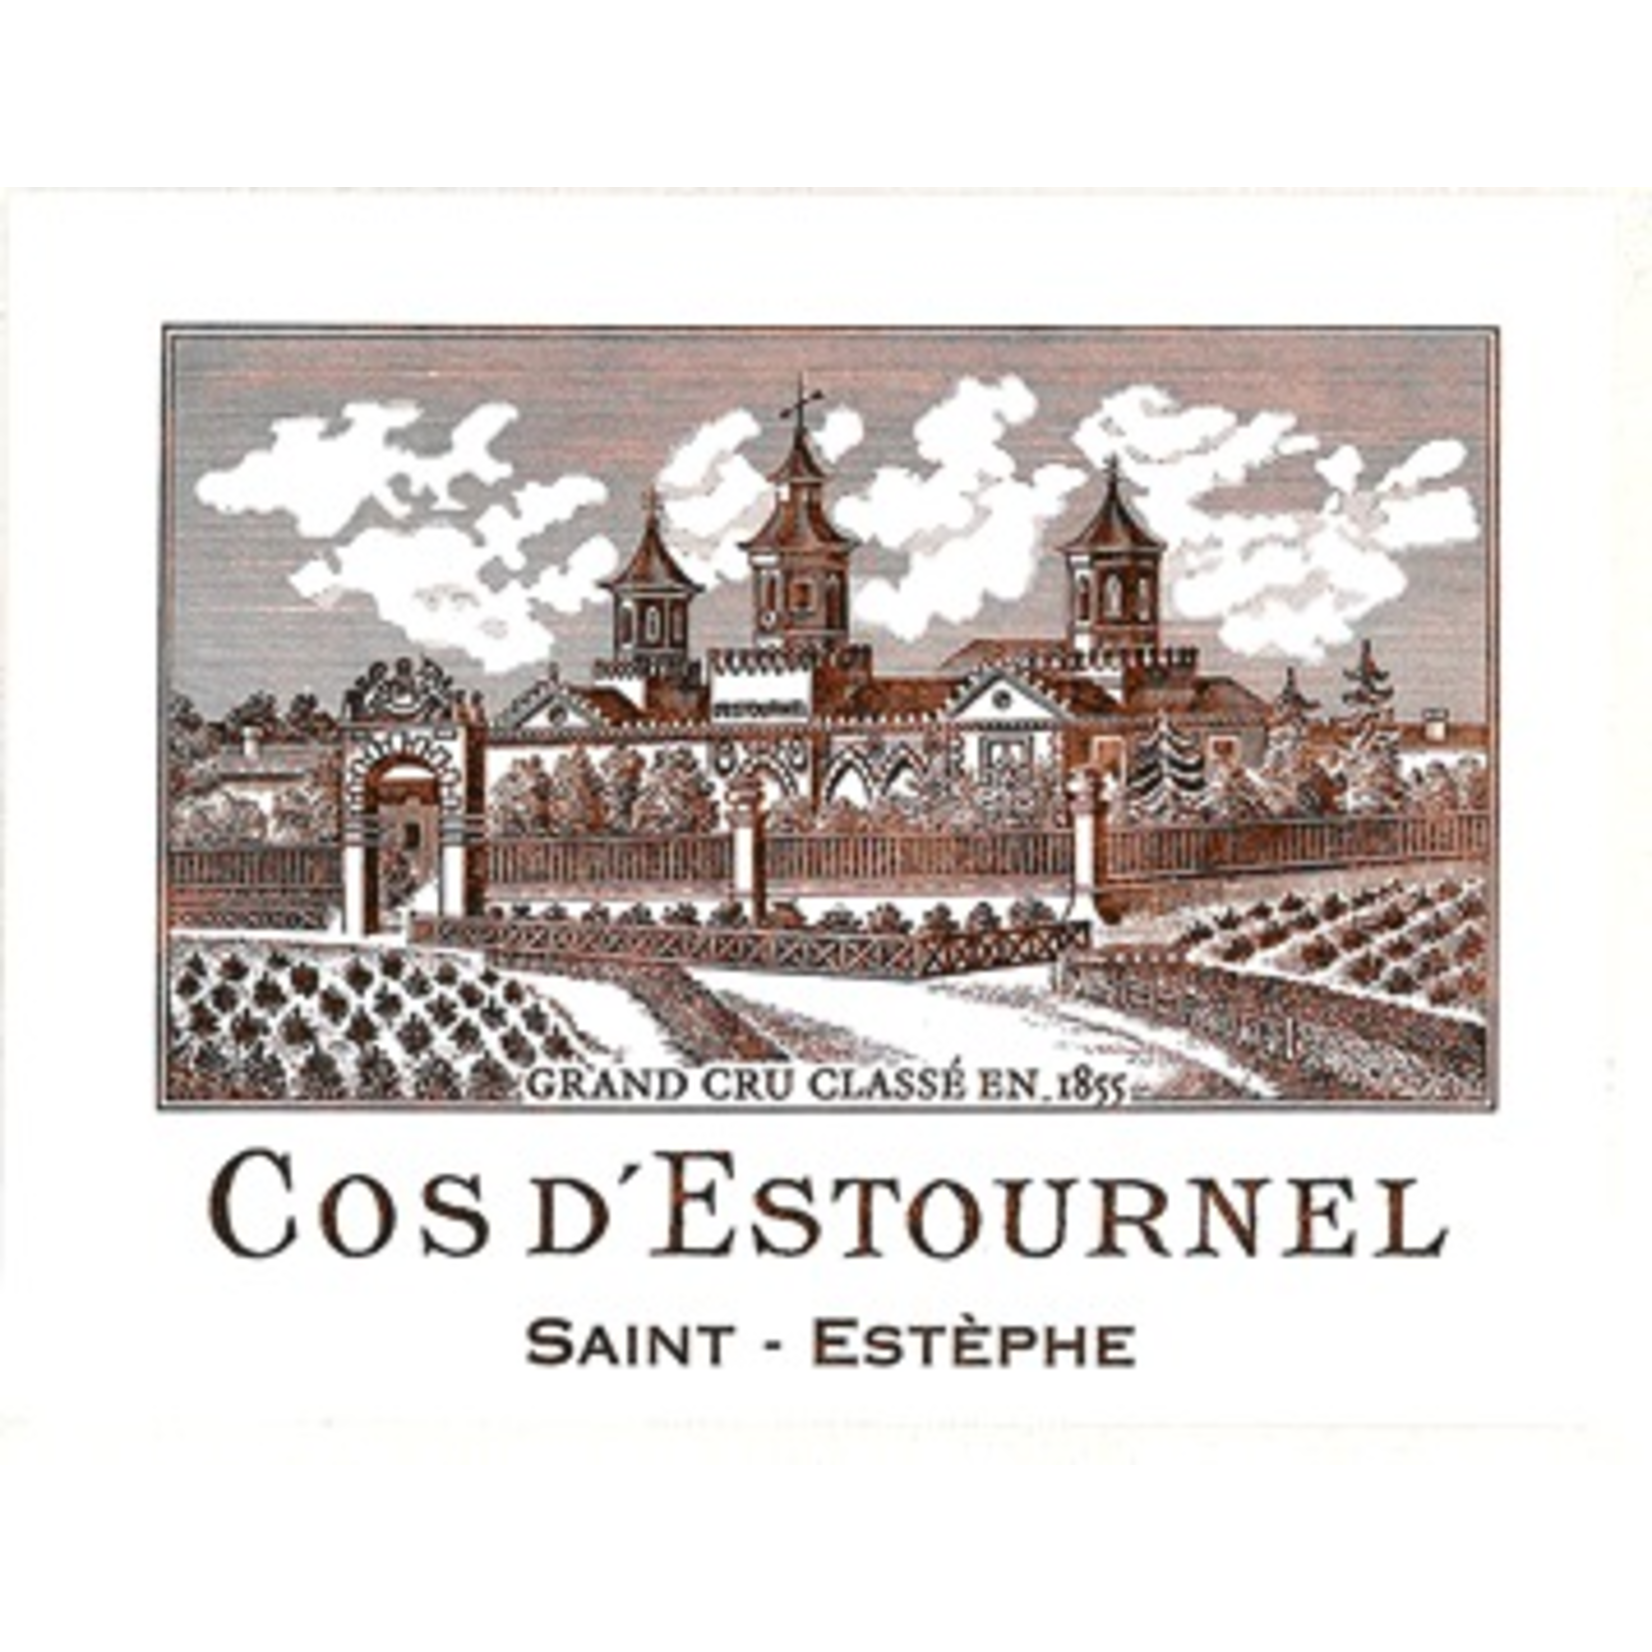 Wine Chateau Cos d'Estournel 2008